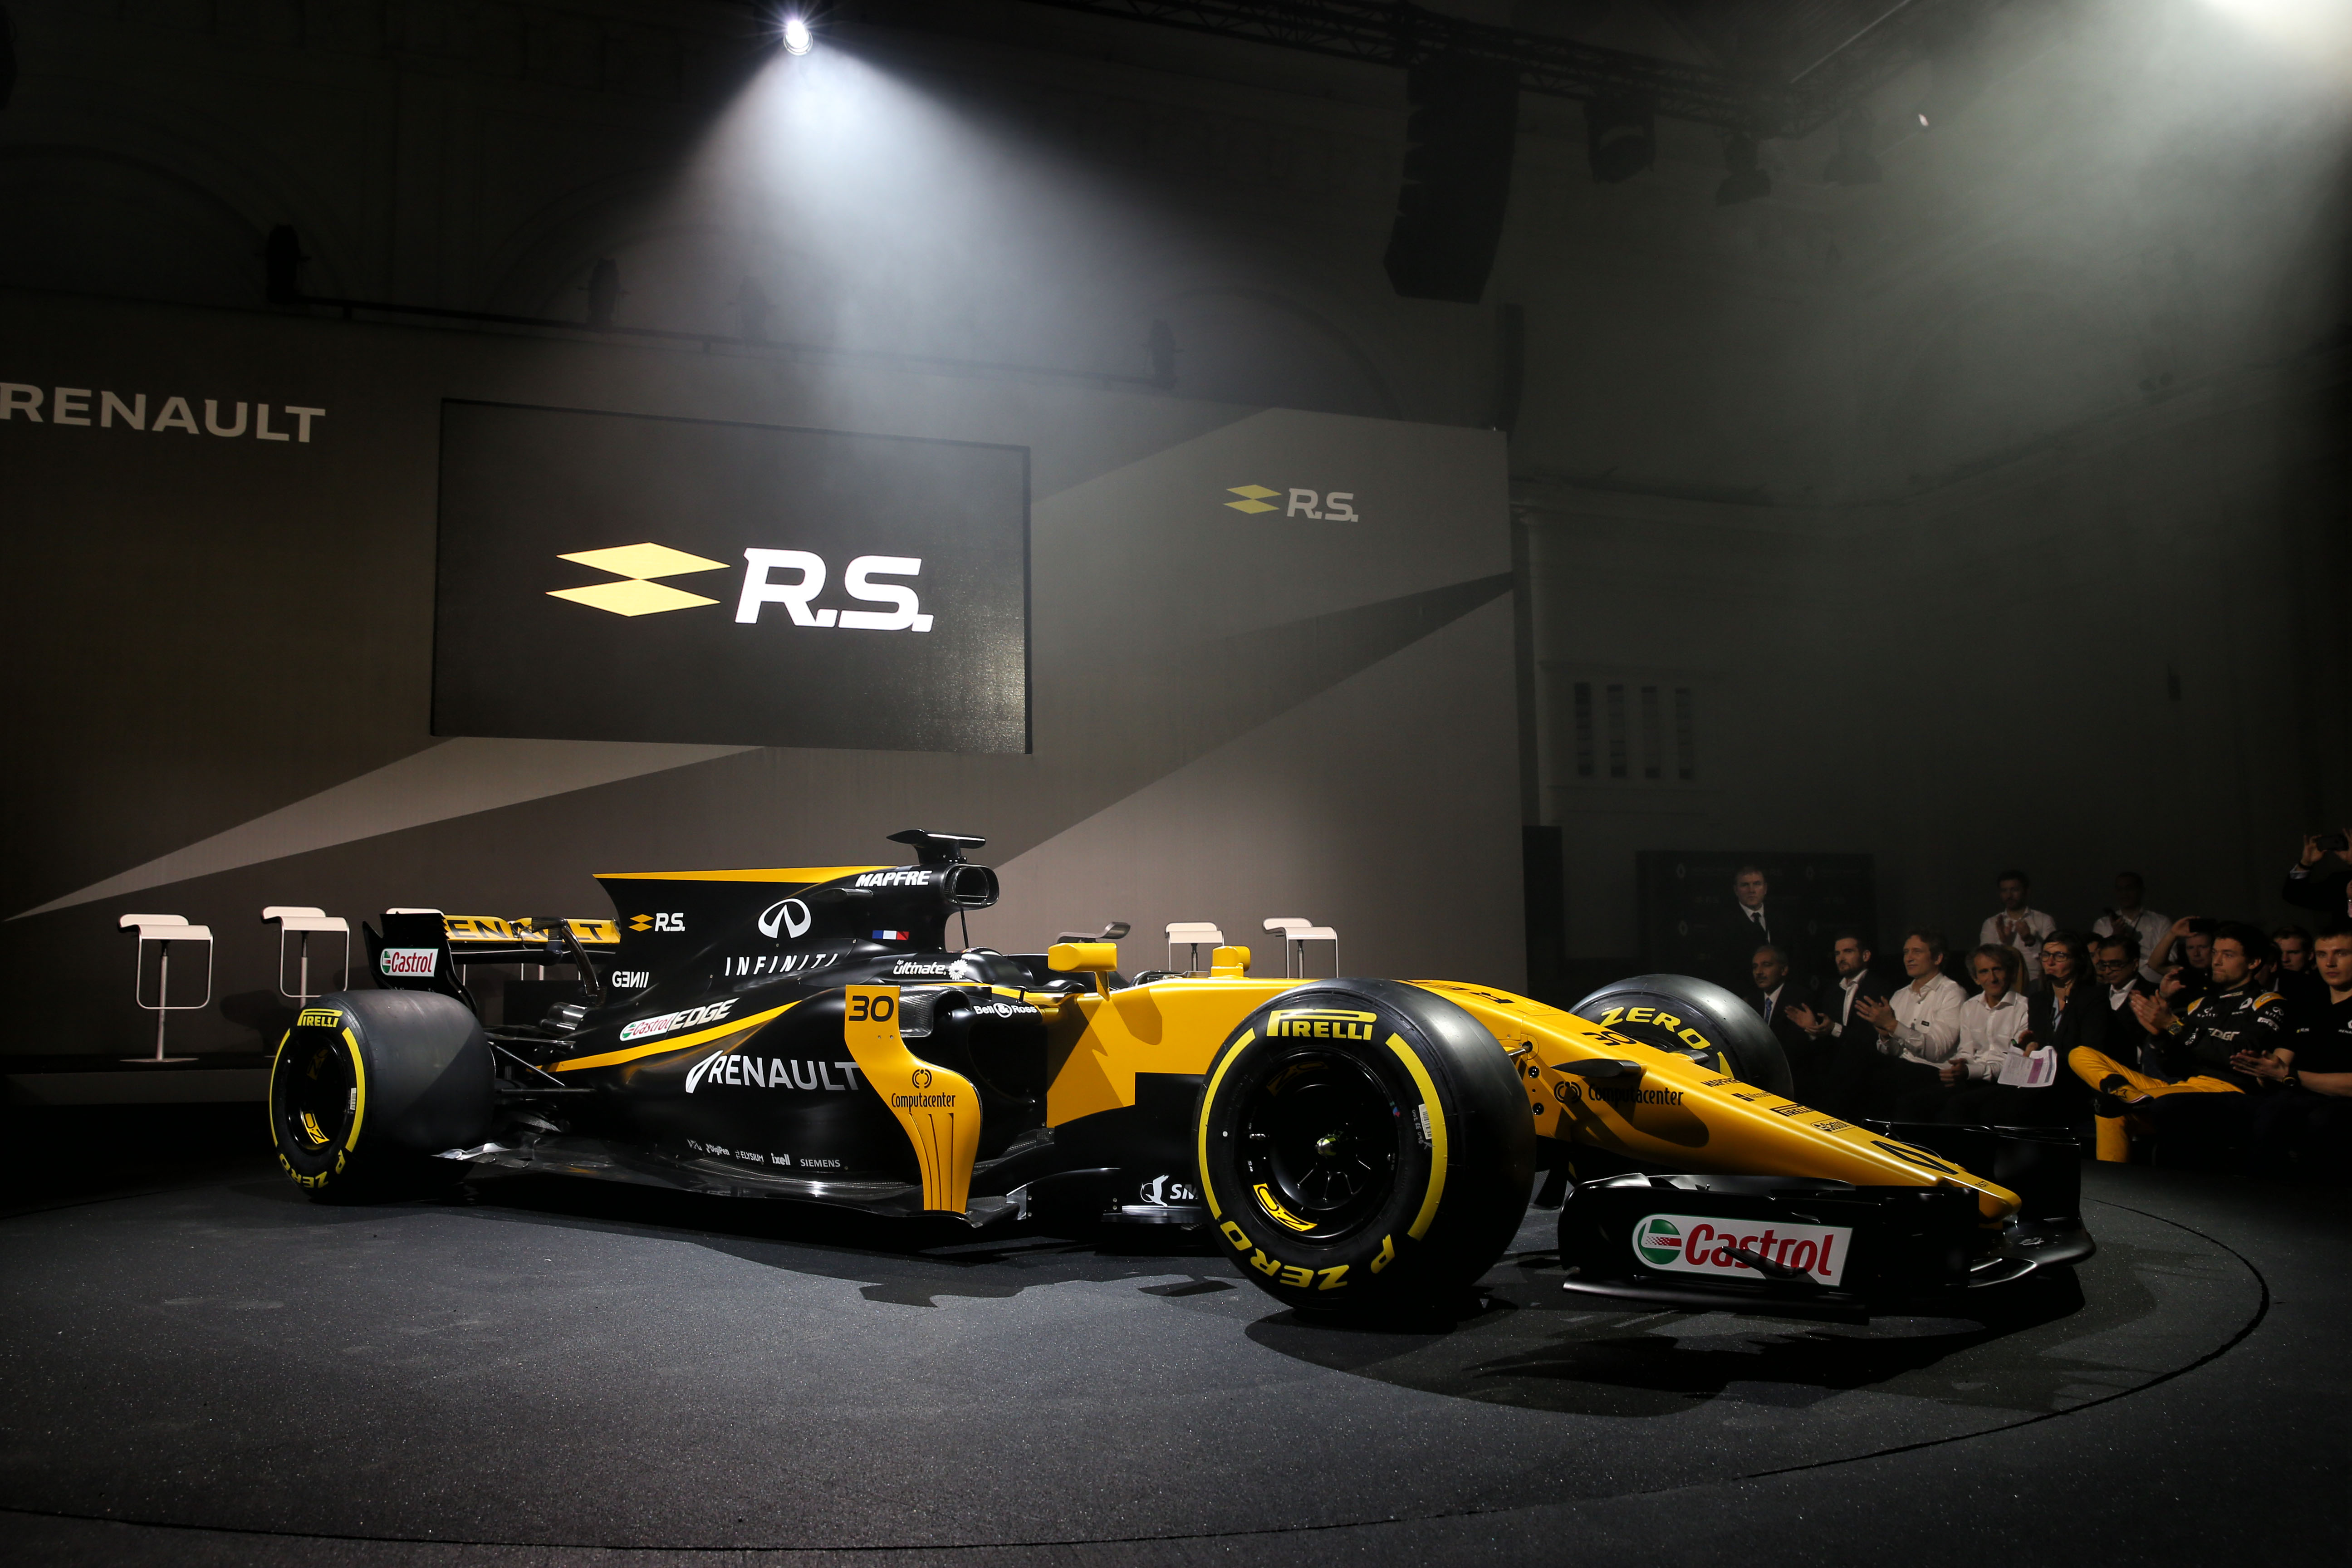 bell ross unveils new timepiece at renault sport f1 team new r car livery launch alvinology. Black Bedroom Furniture Sets. Home Design Ideas